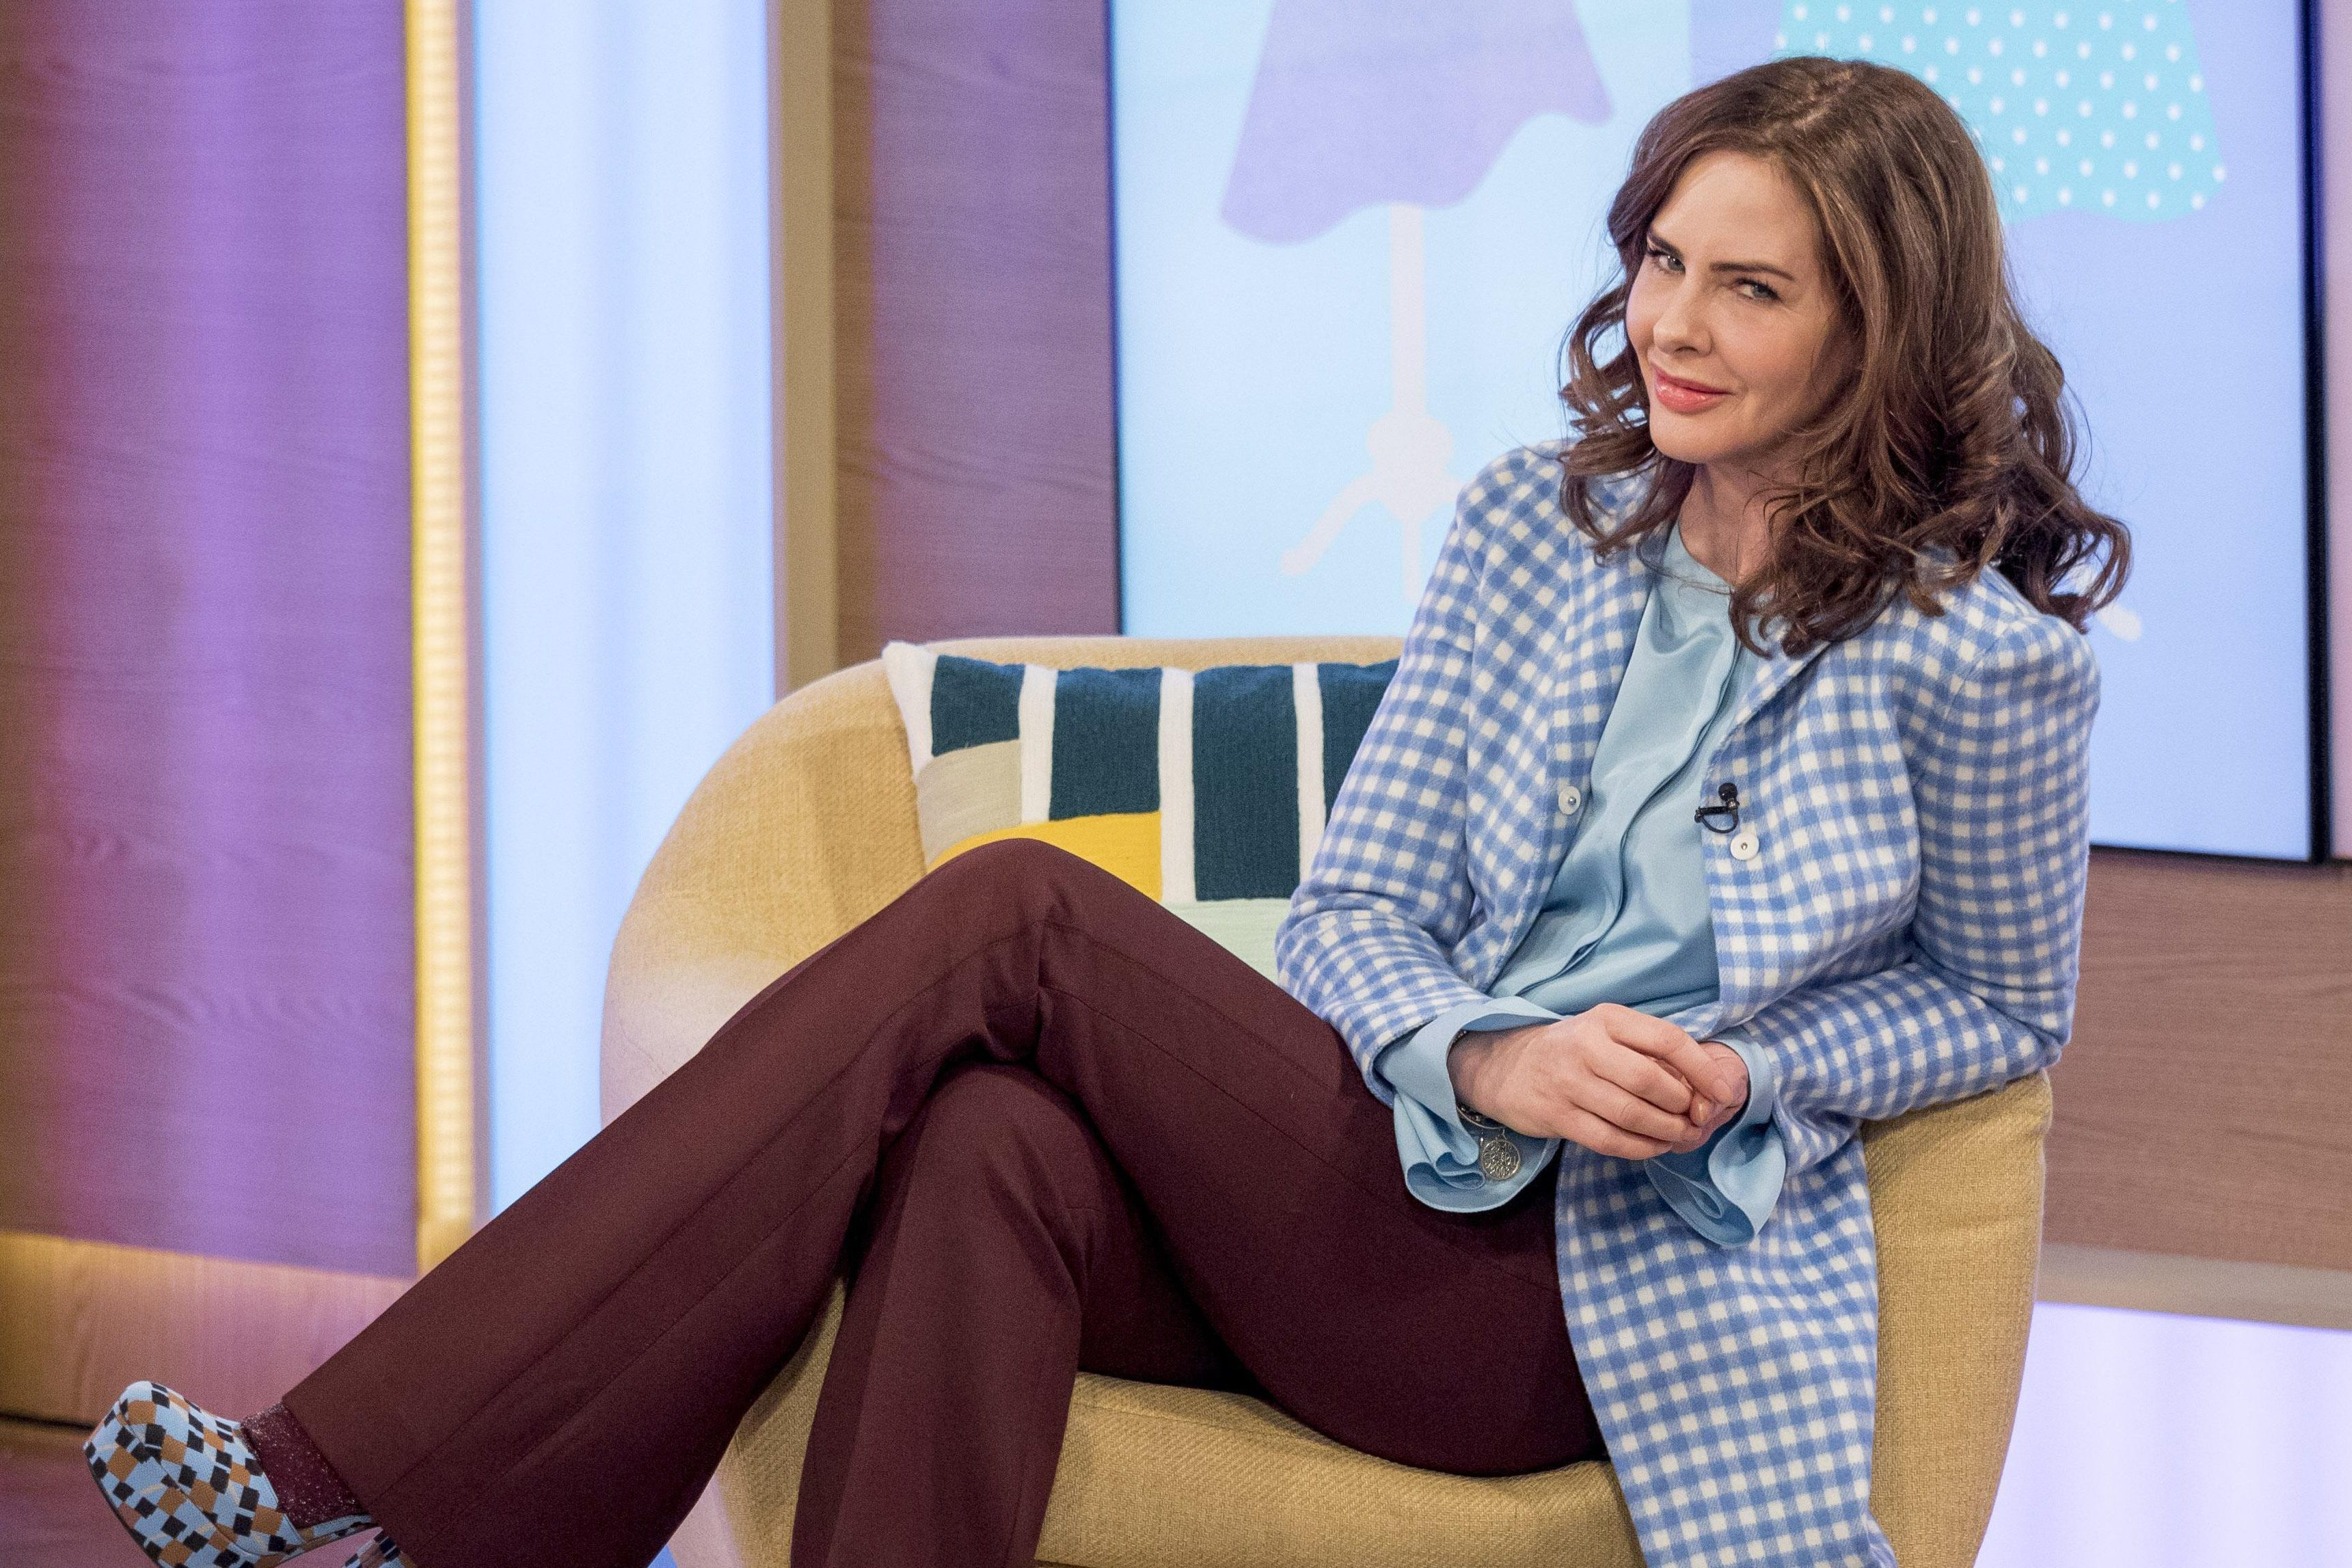 How old is Trinny Woodall, what shows did she present with Susannah Constantine and is the fashion expert dating Charles Saatchi?